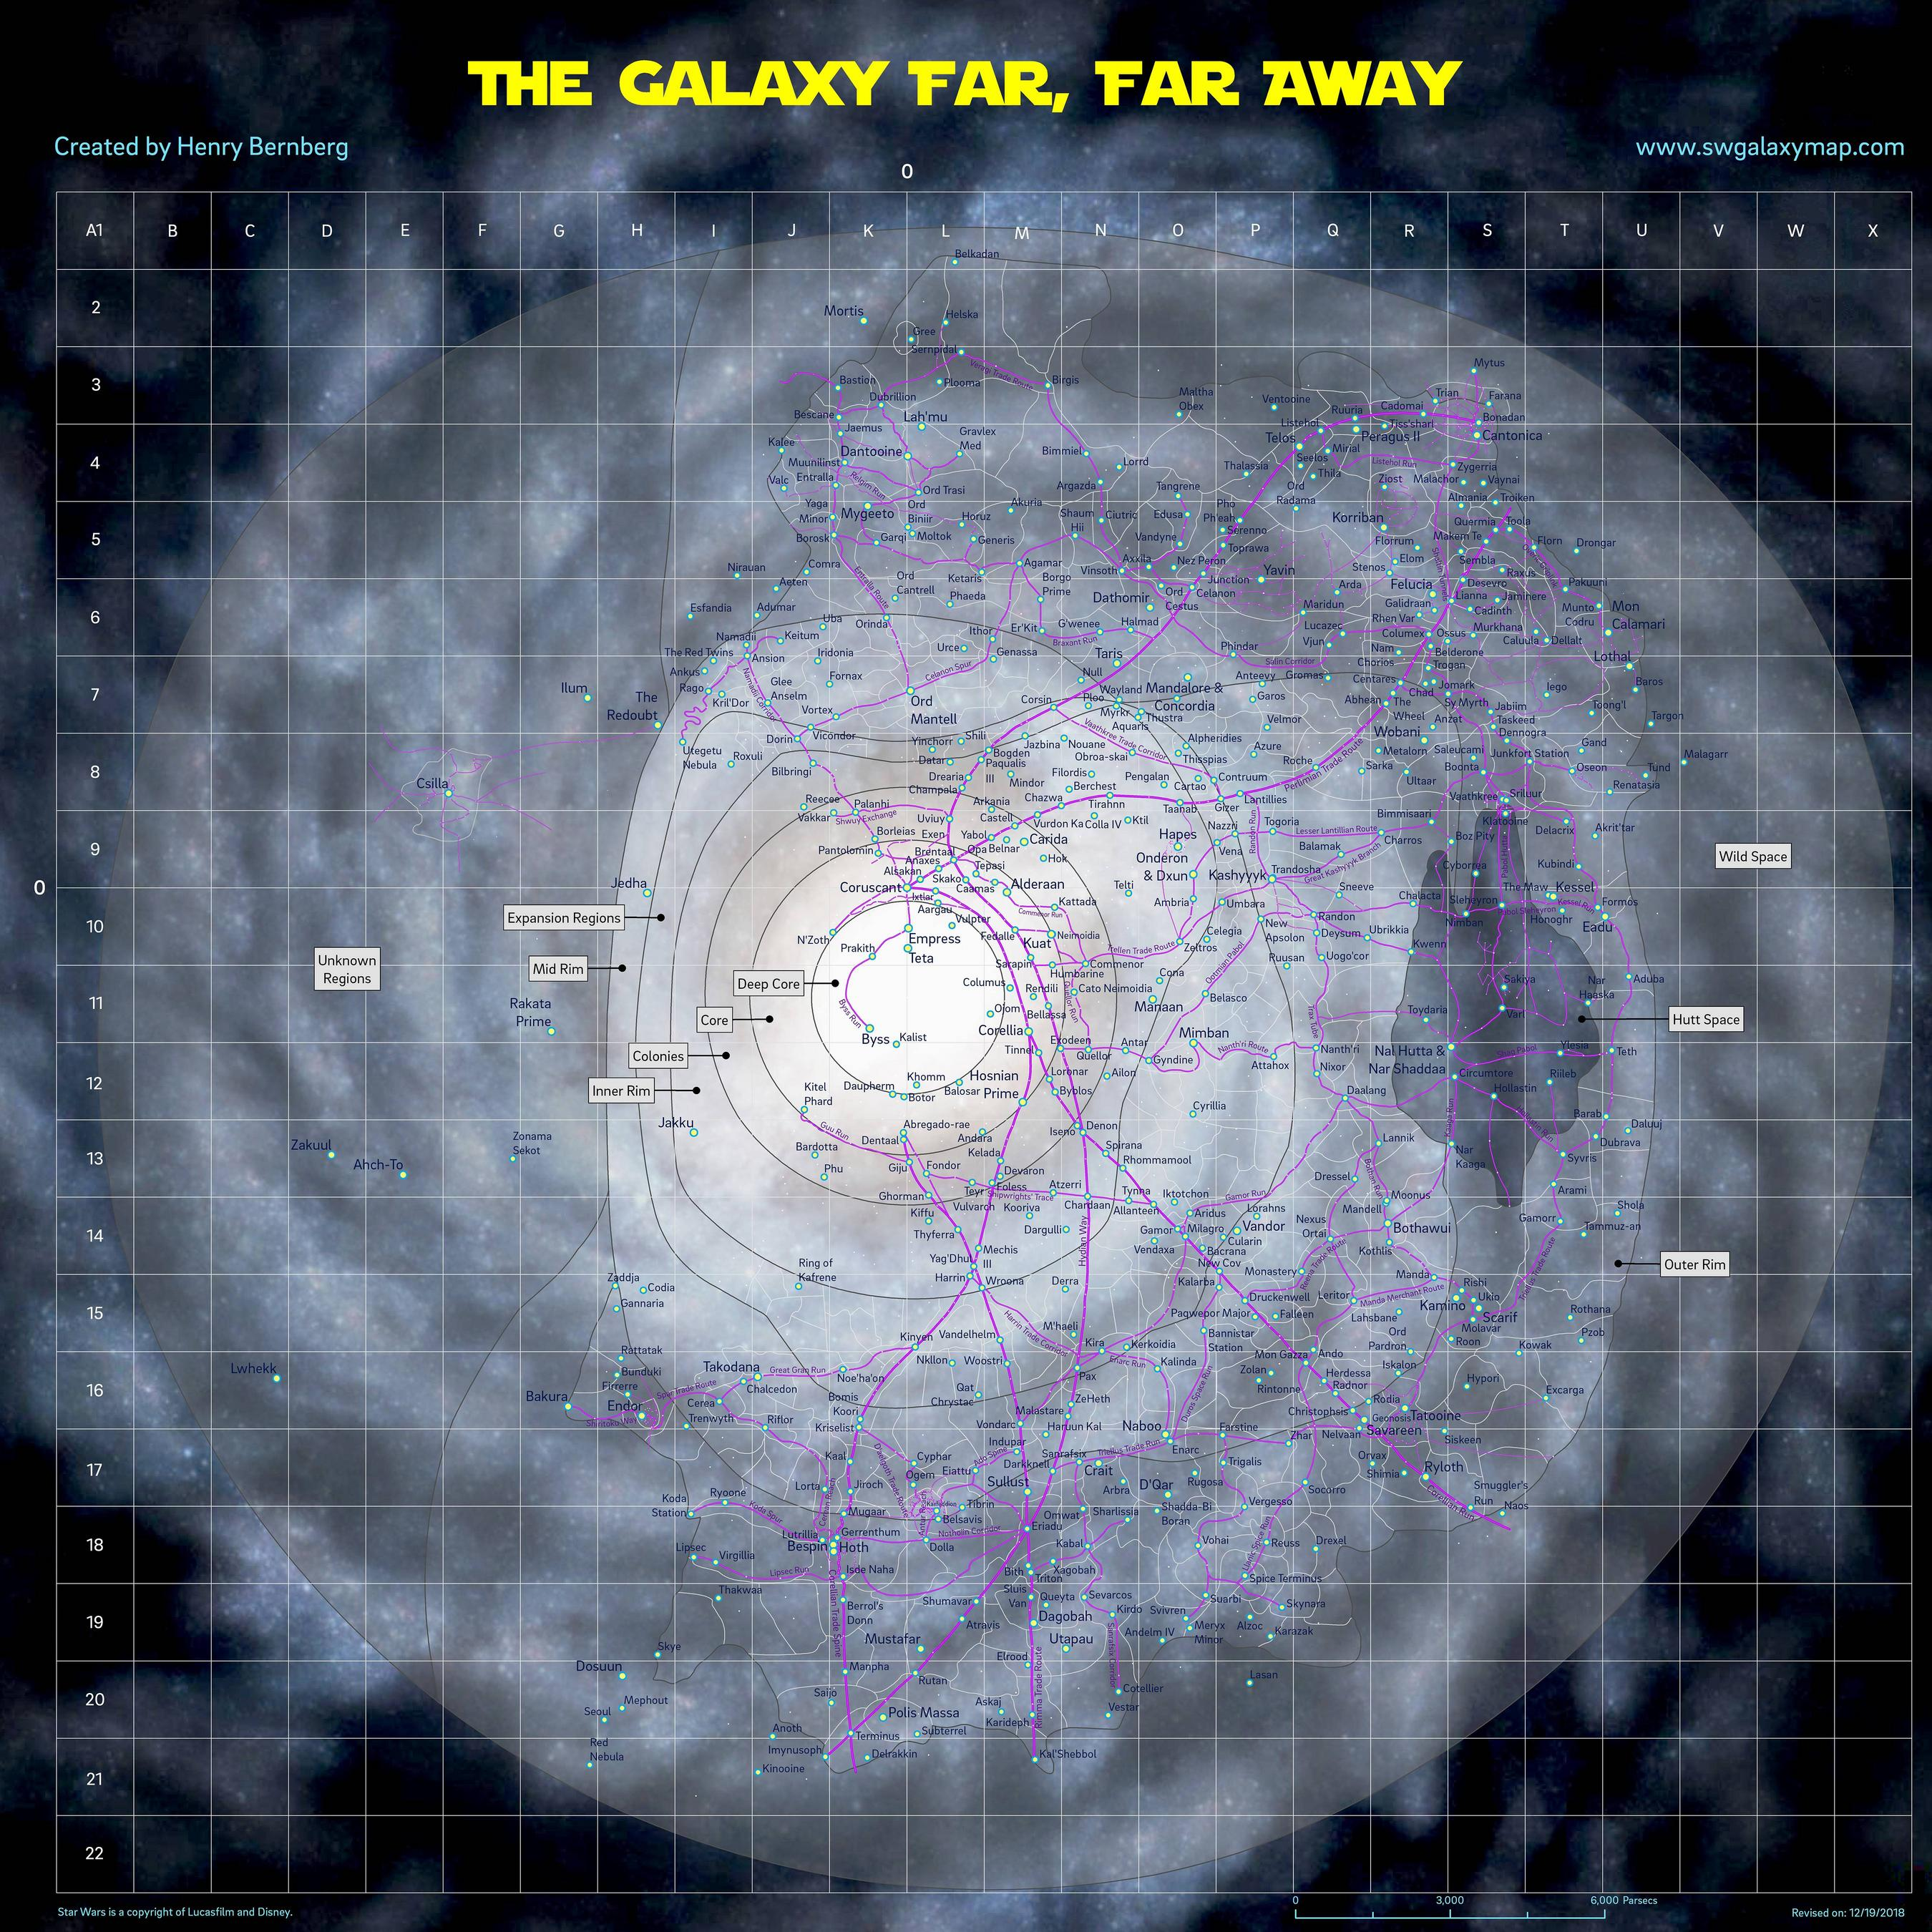 I made a map of the Galaxy Far, Far Away. Let me know what you think.